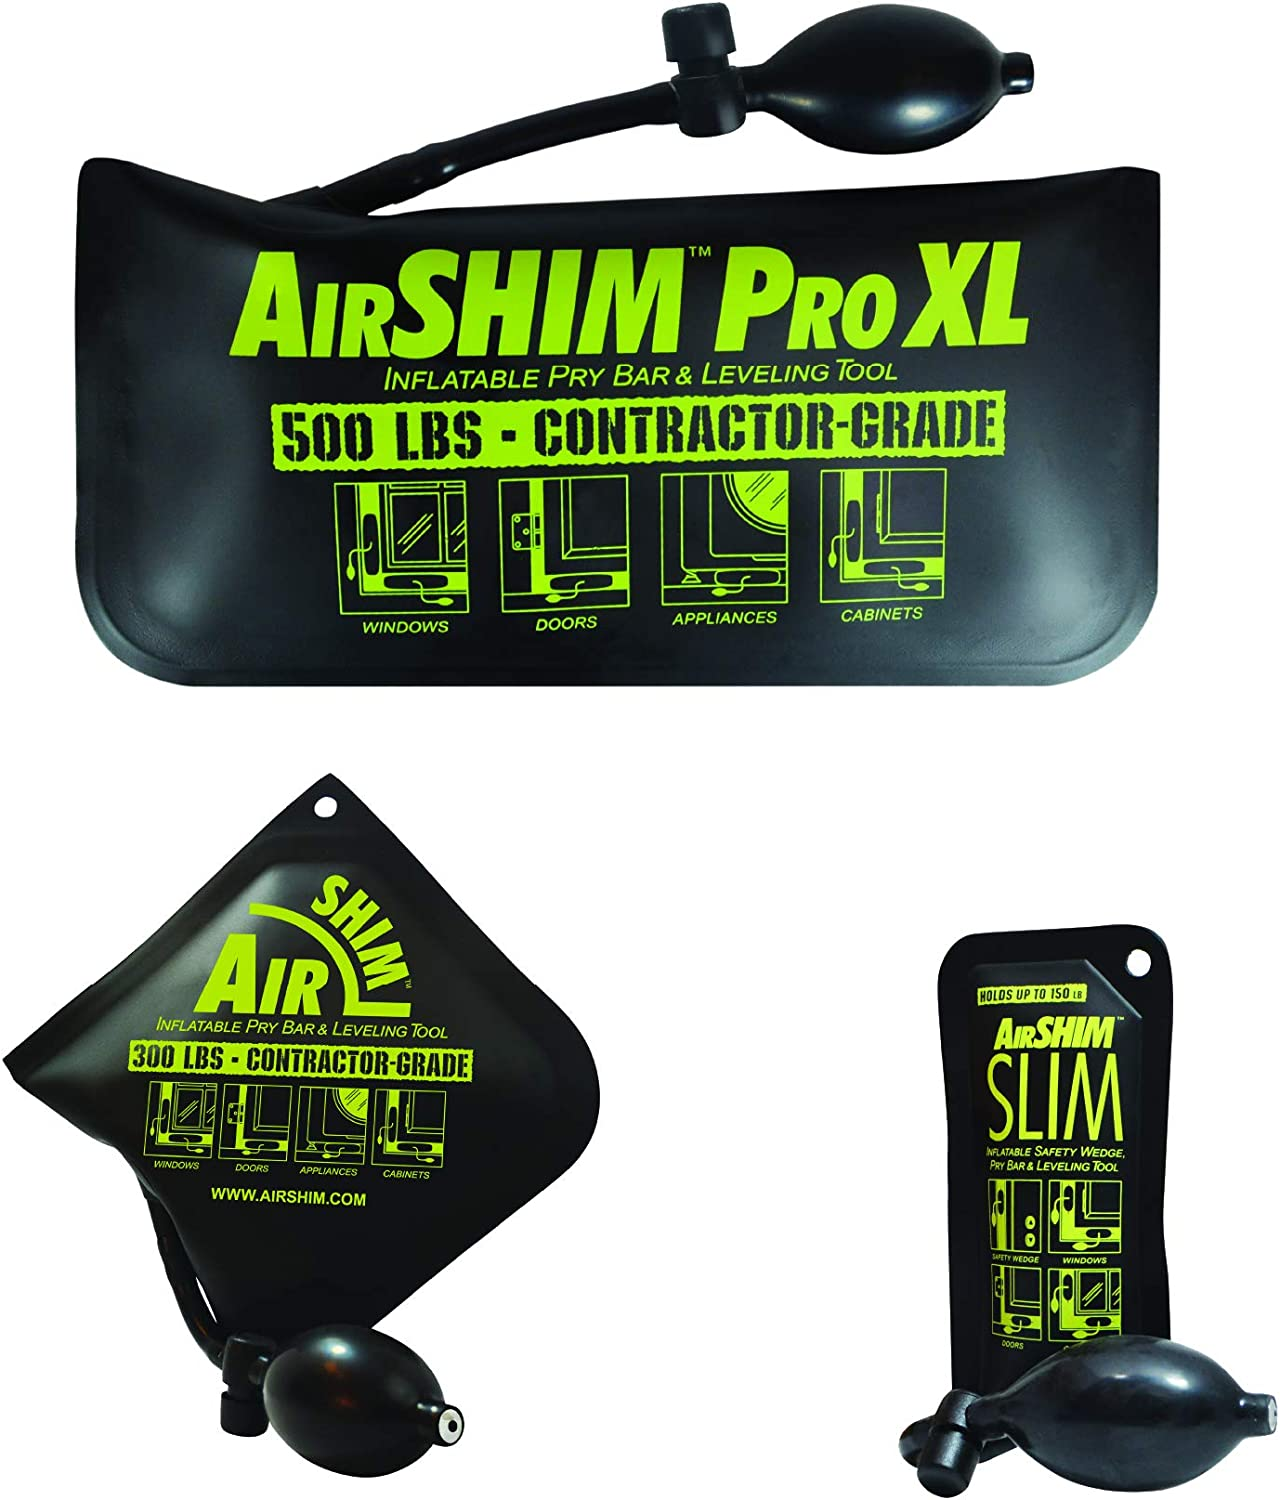 Calculated Industries 1134 AirShim Inflatable Pry Bars and Leveling Tools 3-pc Value Pack – Original AirShim, AirShim Pro XL, and AirShim Slim   Contractor-Grade Alignment Pump Wedges   Set of 3